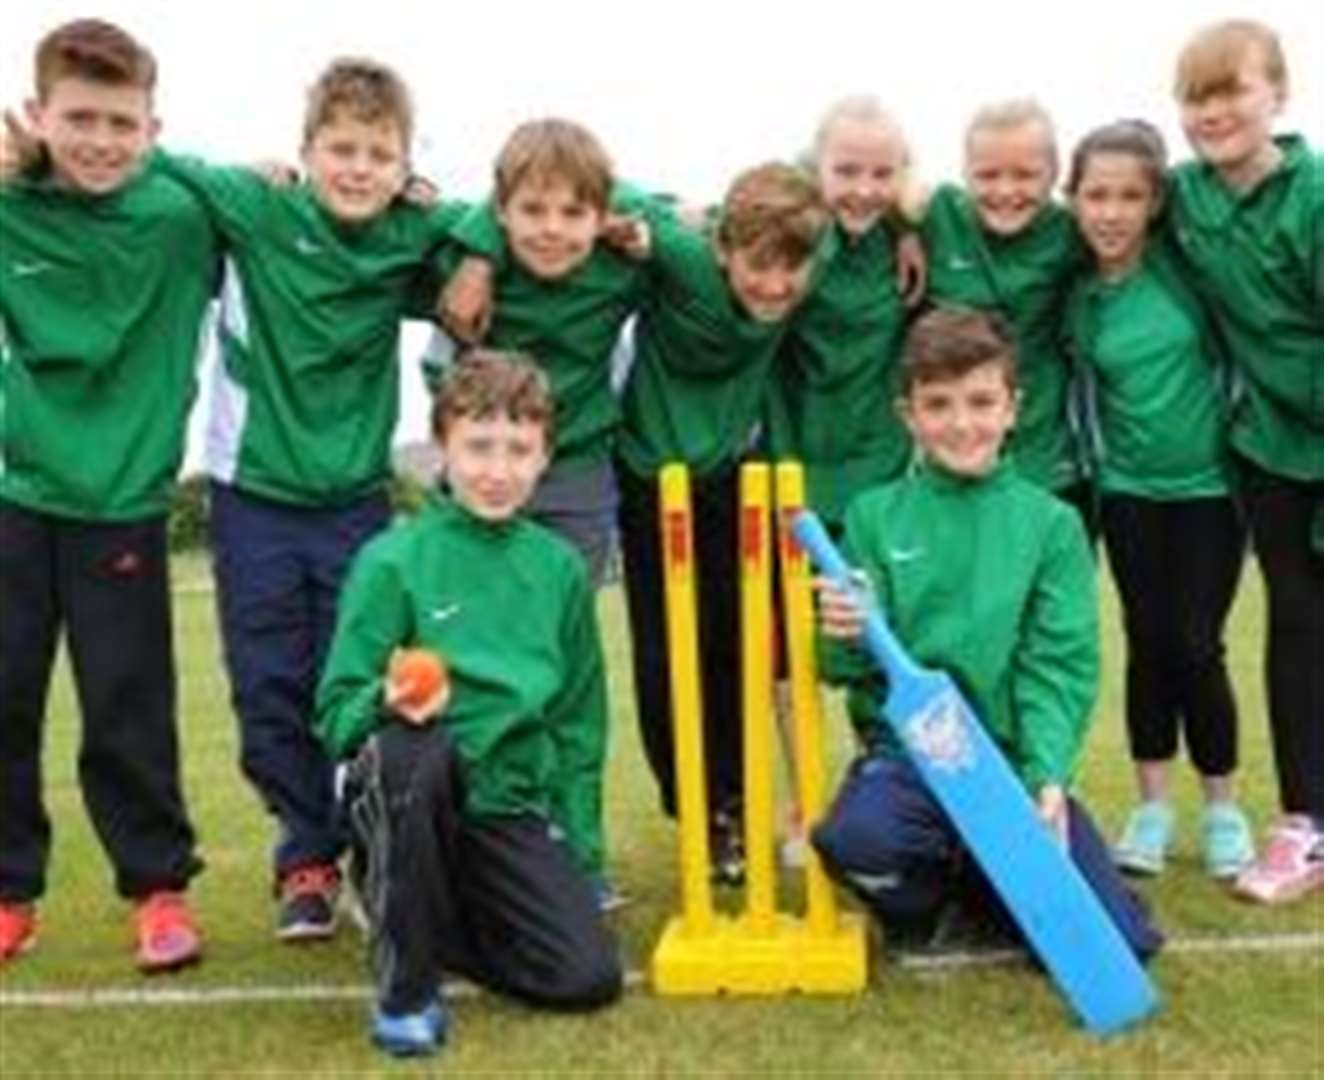 Applegrove just miss out on kwik cricket success